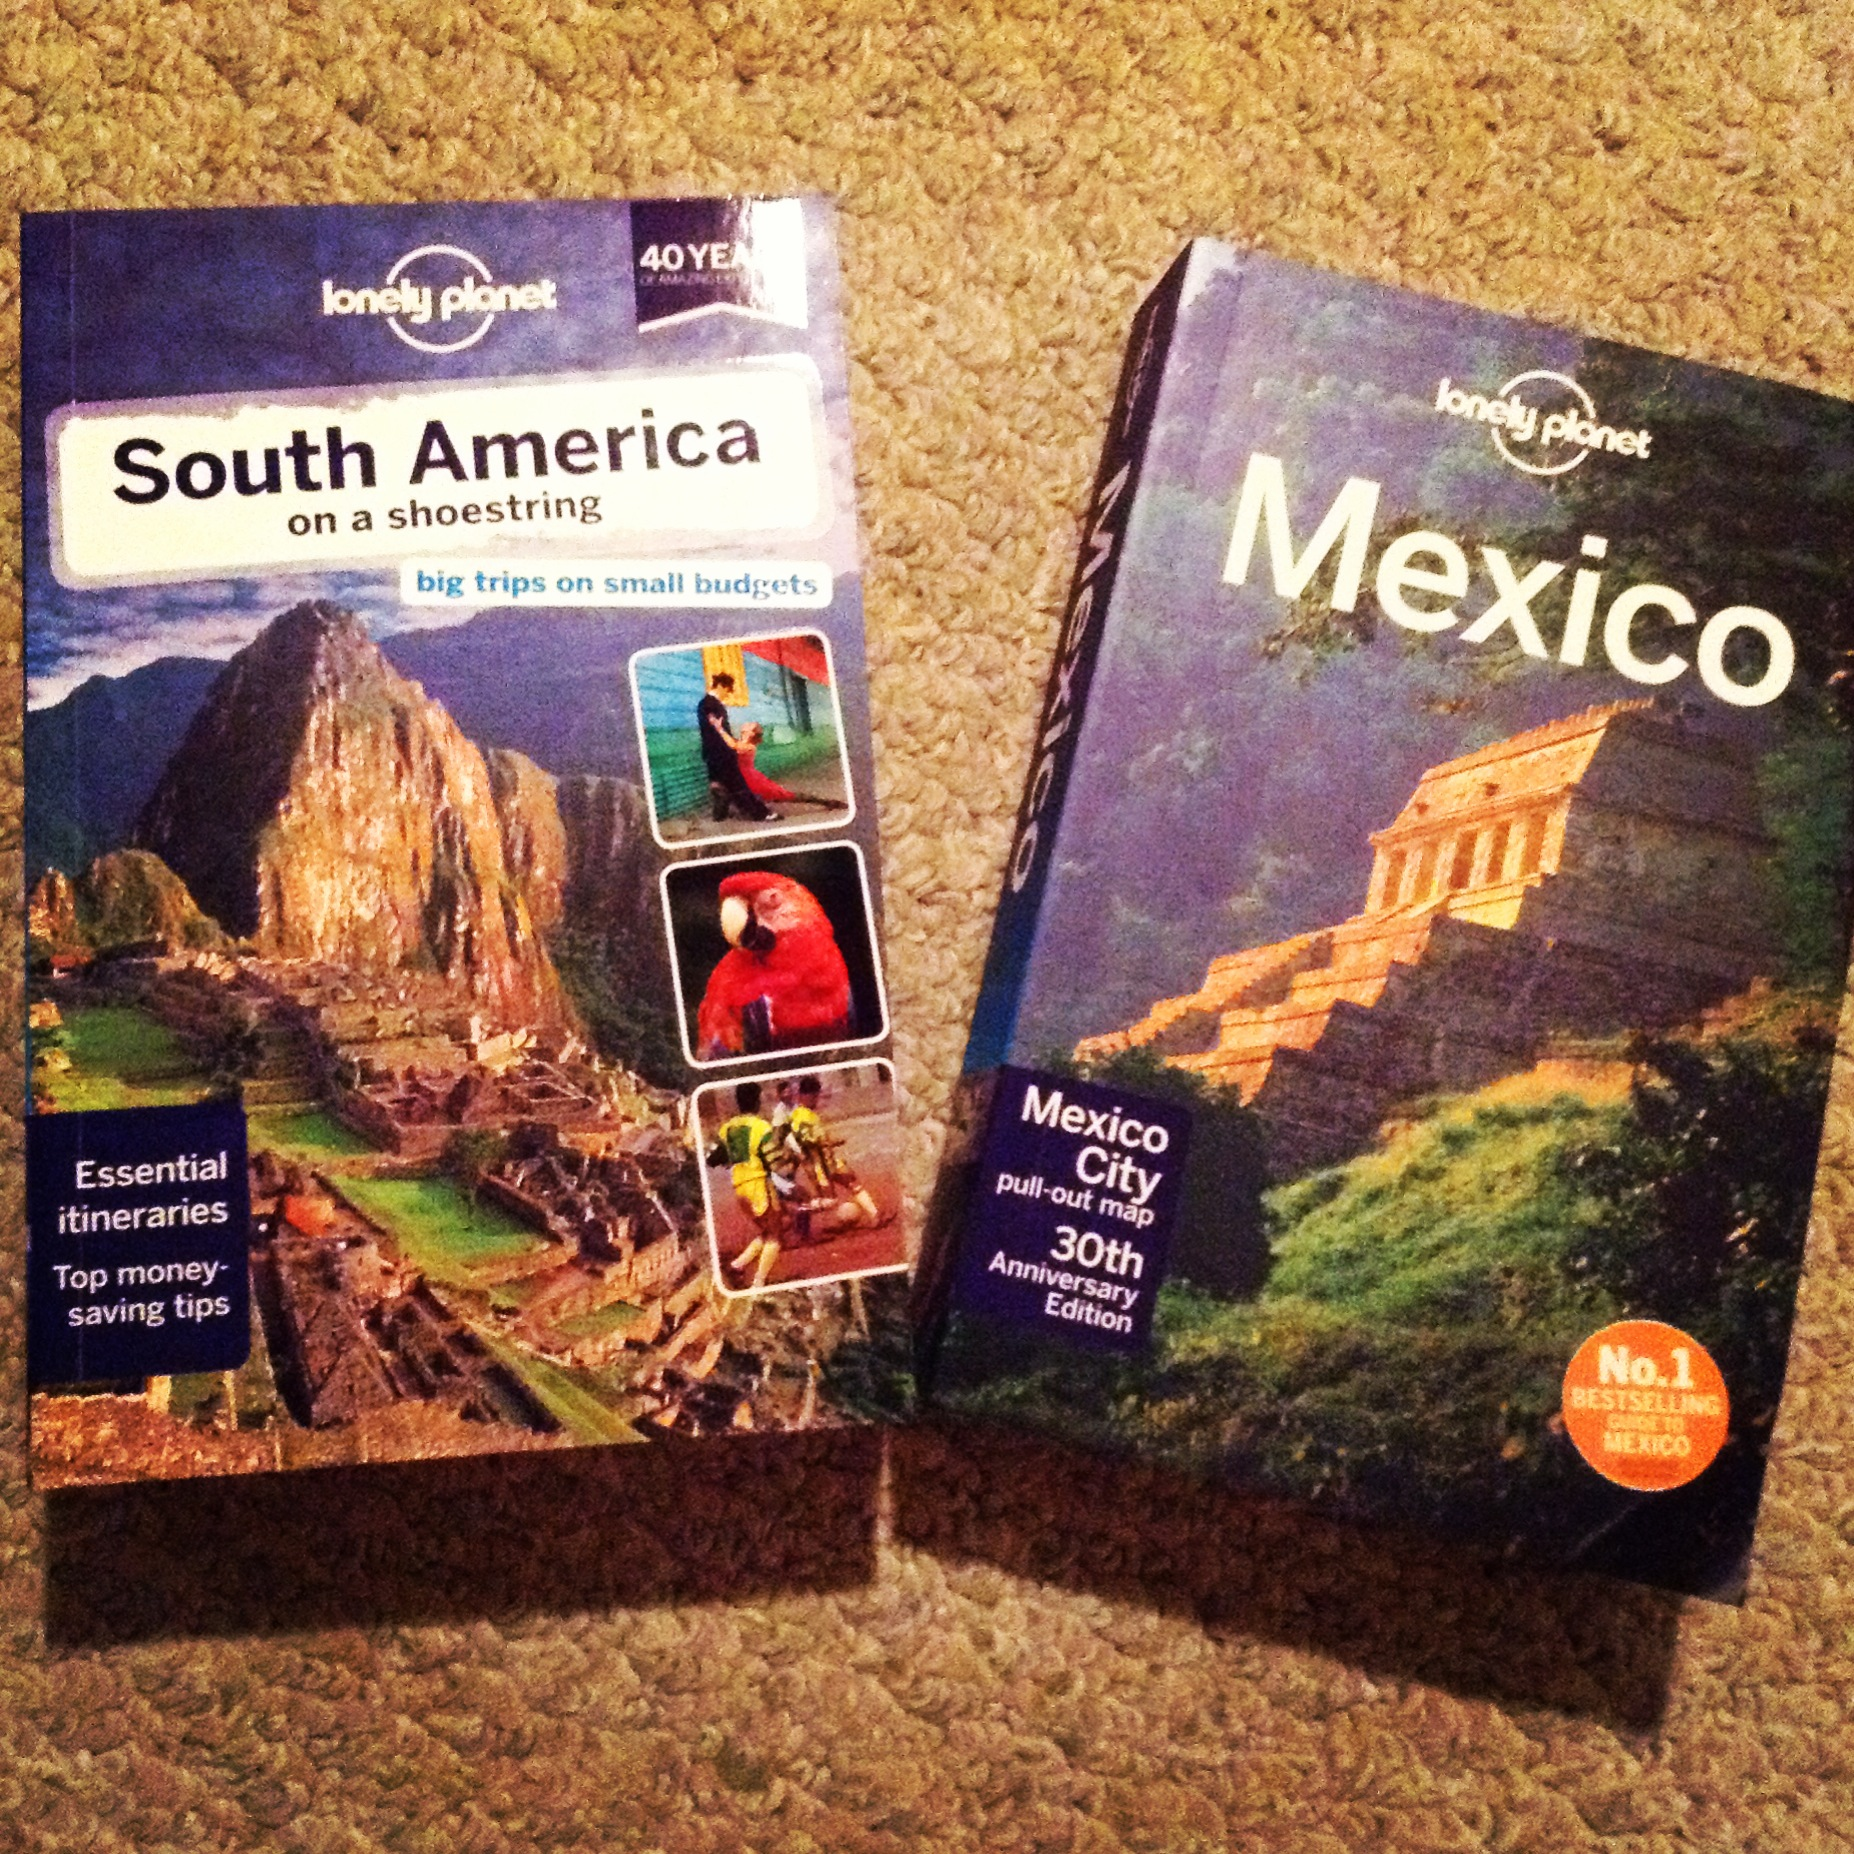 South America and Mexico Lonely Planet